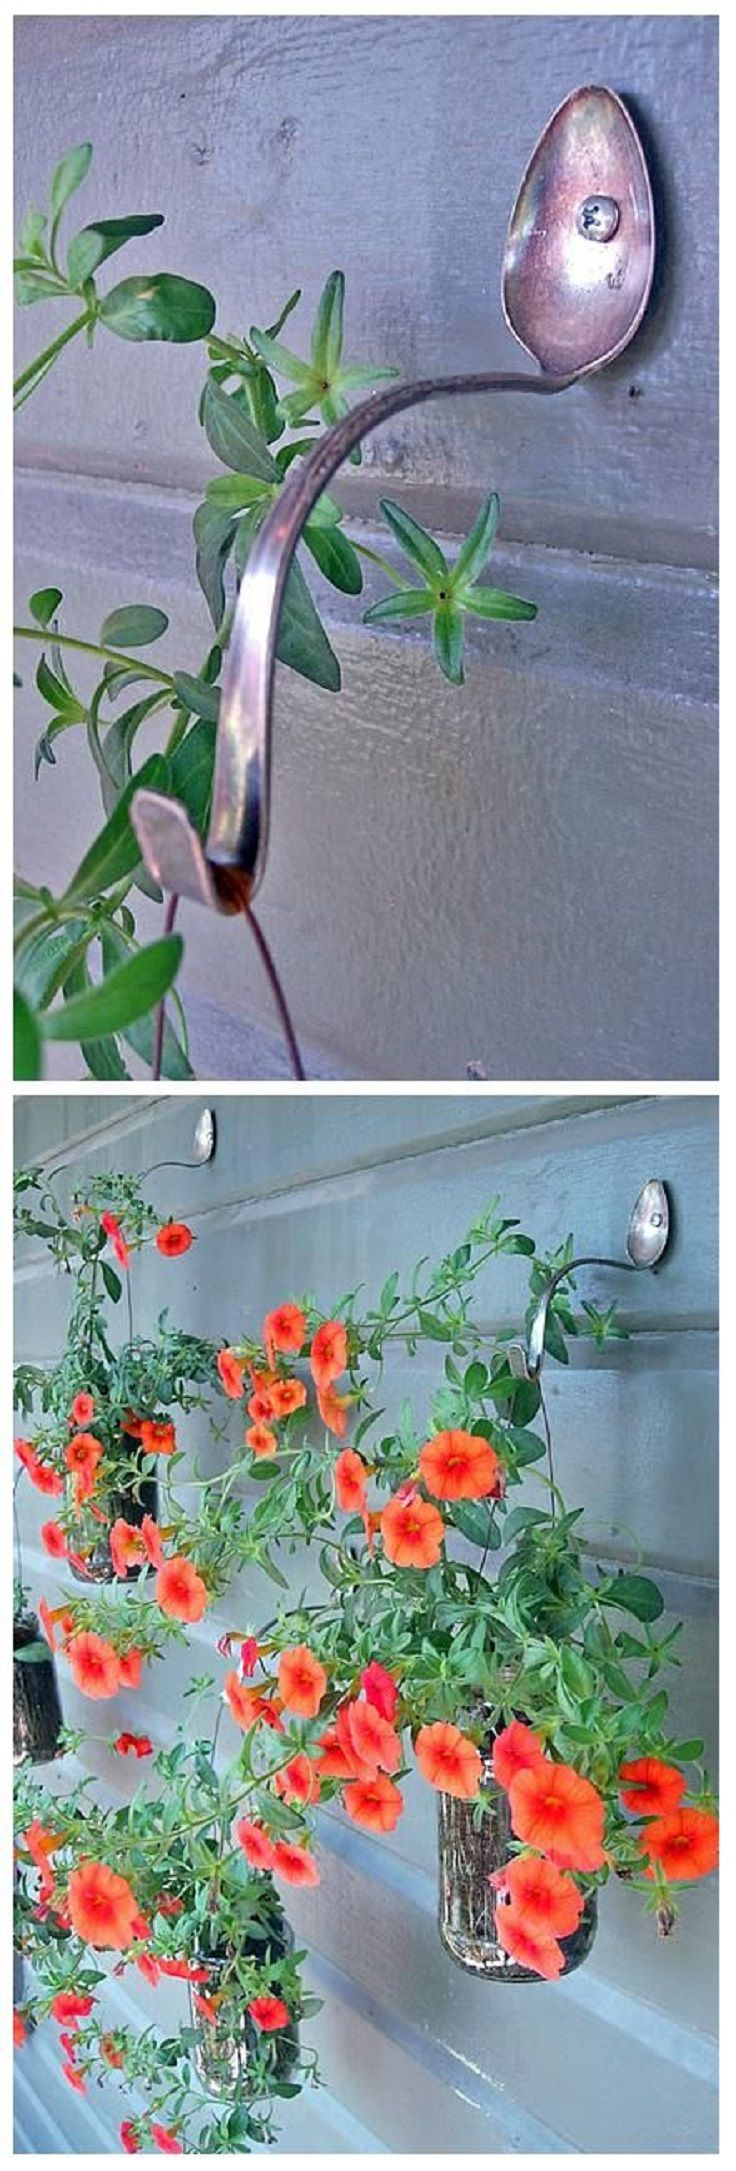 DIY & Upcycling in the garden: that's what you can do with a spoon and a jam jar!